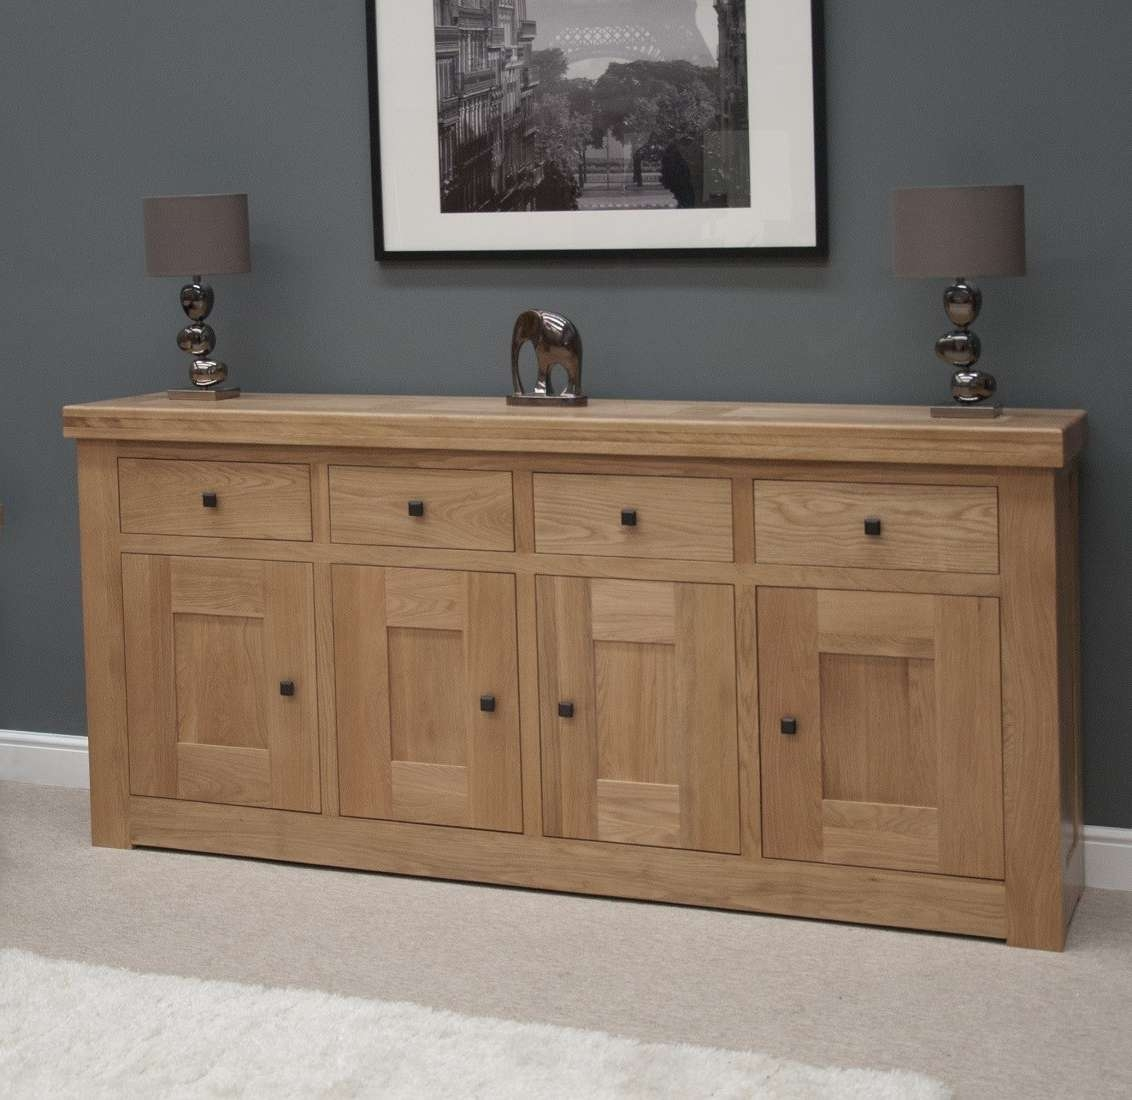 French Bordeaux Oak Extra Large 4 Door Sideboard | Oak Furniture Uk Throughout Large Sideboards (View 7 of 20)